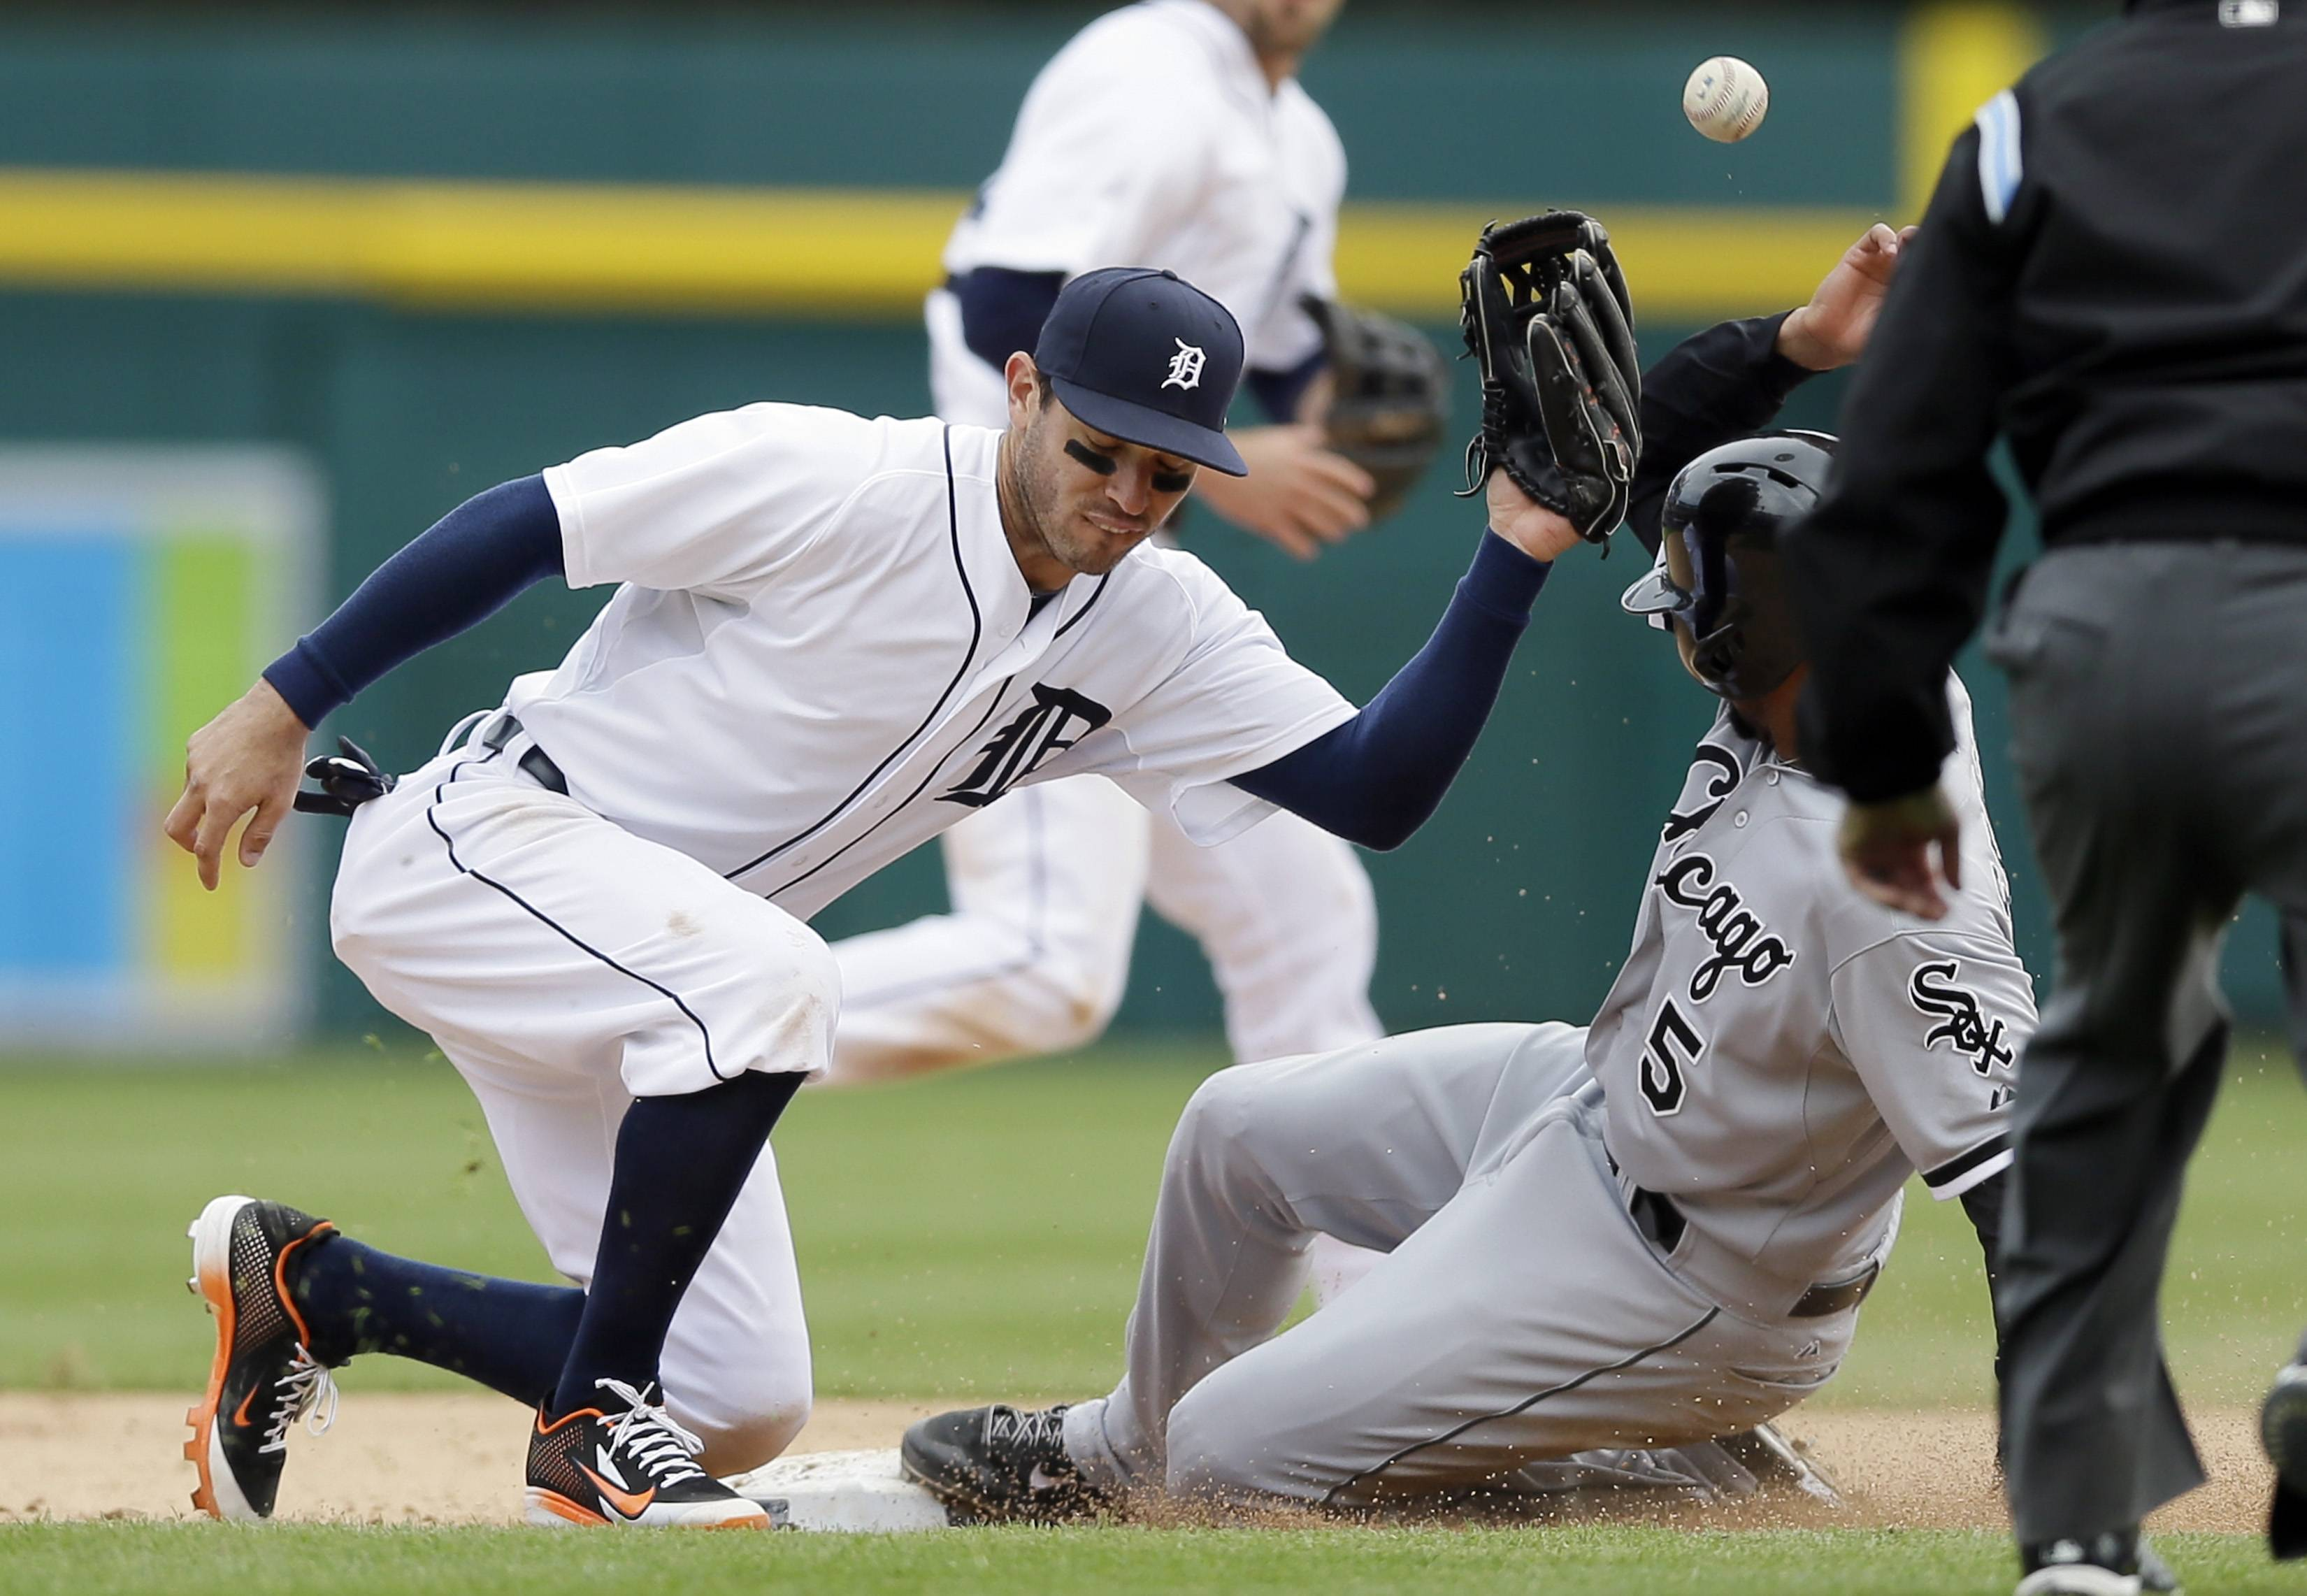 Detroit Tigers second baseman Ian Kinsler bobbles the ball as Chicago White Sox's Marcus Semien slides into second during the ninth inning of a baseball game in Detroit, Thursday, April 24, 2014. Semien was called out because of batter interference by Jose Abreu. The Tigers won 7-4.